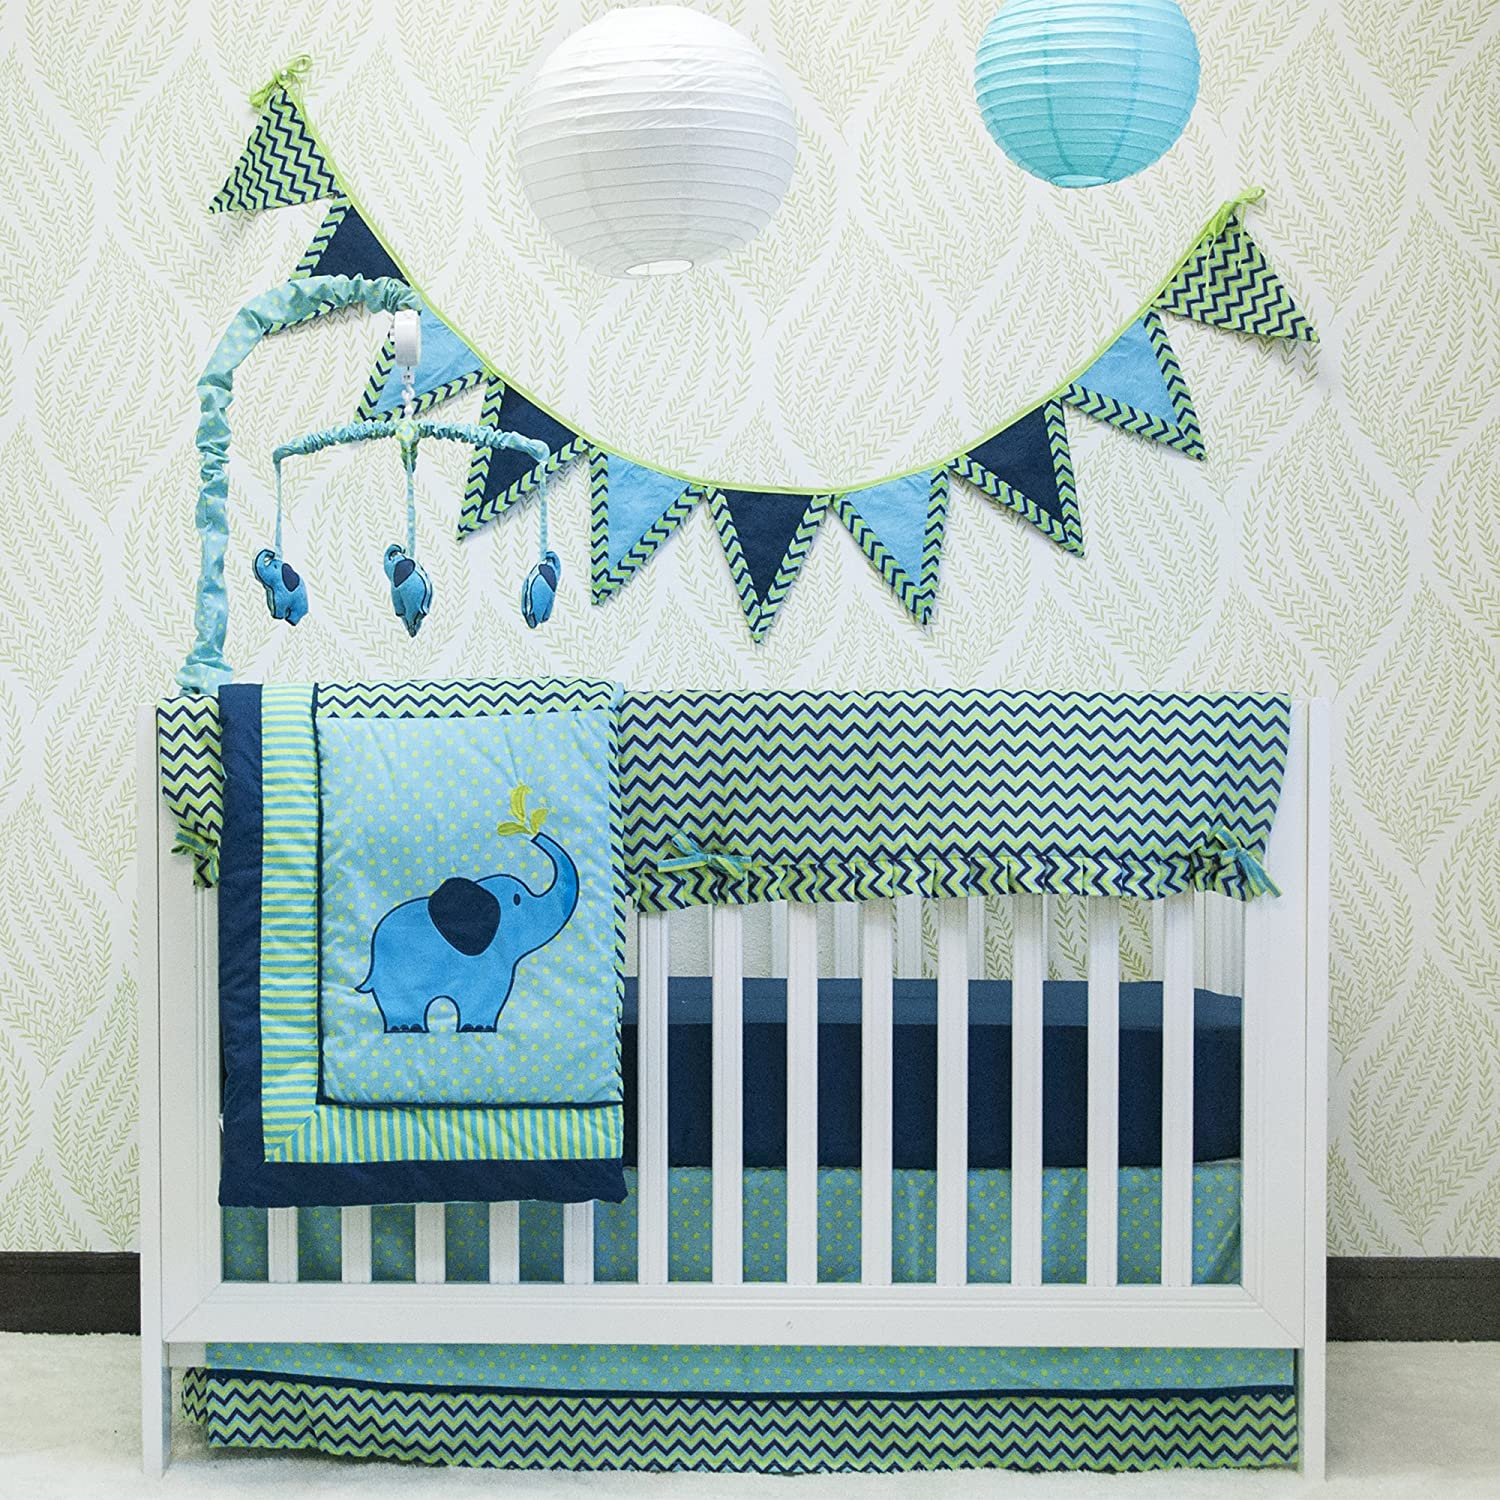 Pam Grace Creations Zigzag 10 Piece Baby Crib Bedding Set, Teal/Lime BDNB-ZIGZAG